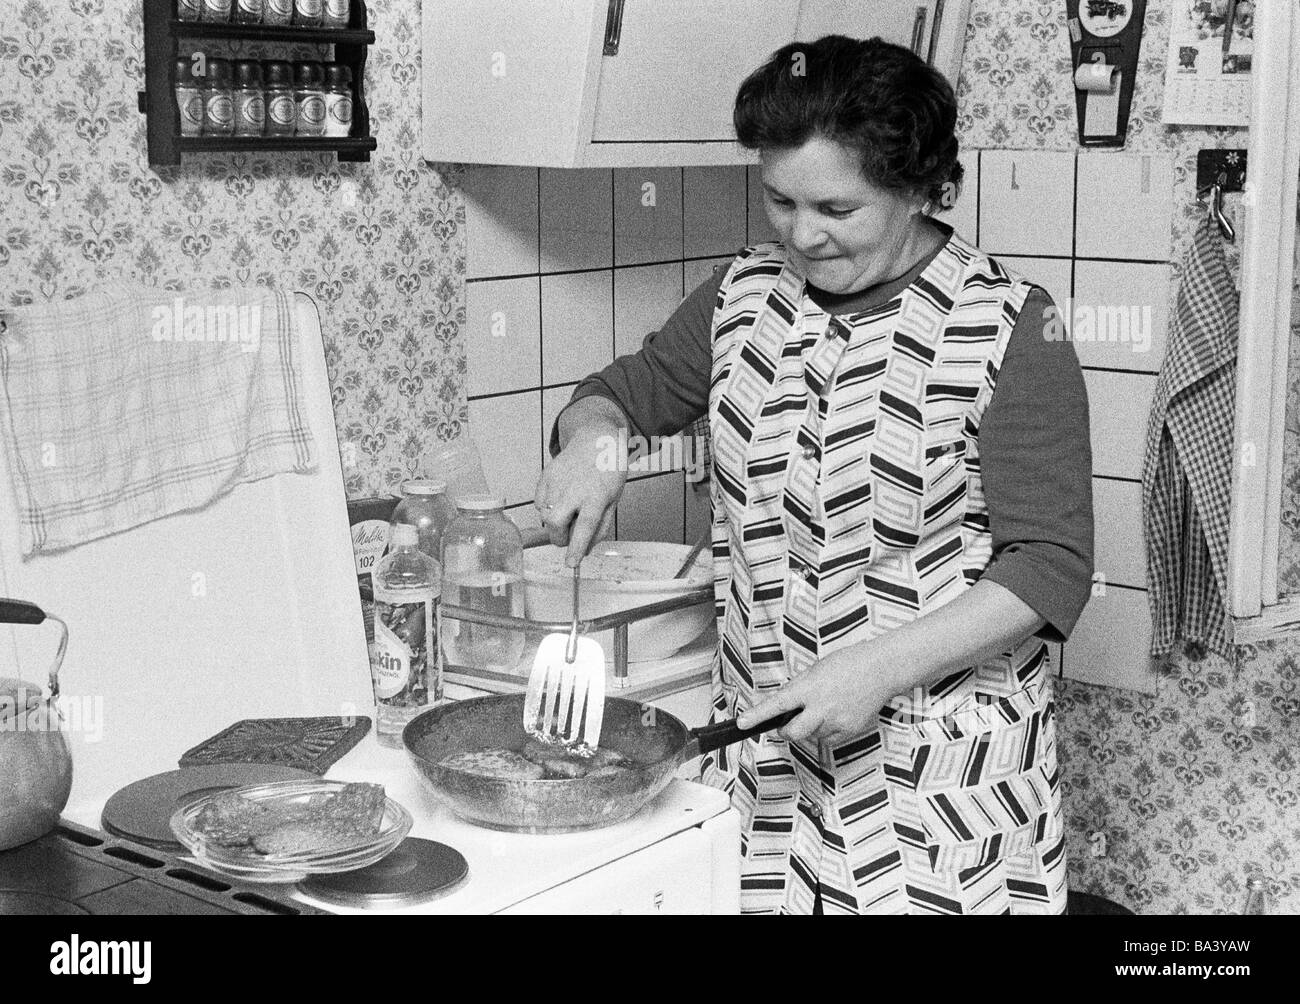 Seventies, black and white photo, people, older woman stands at the cooking-stove and prepares the food, aged 55 - Stock Image